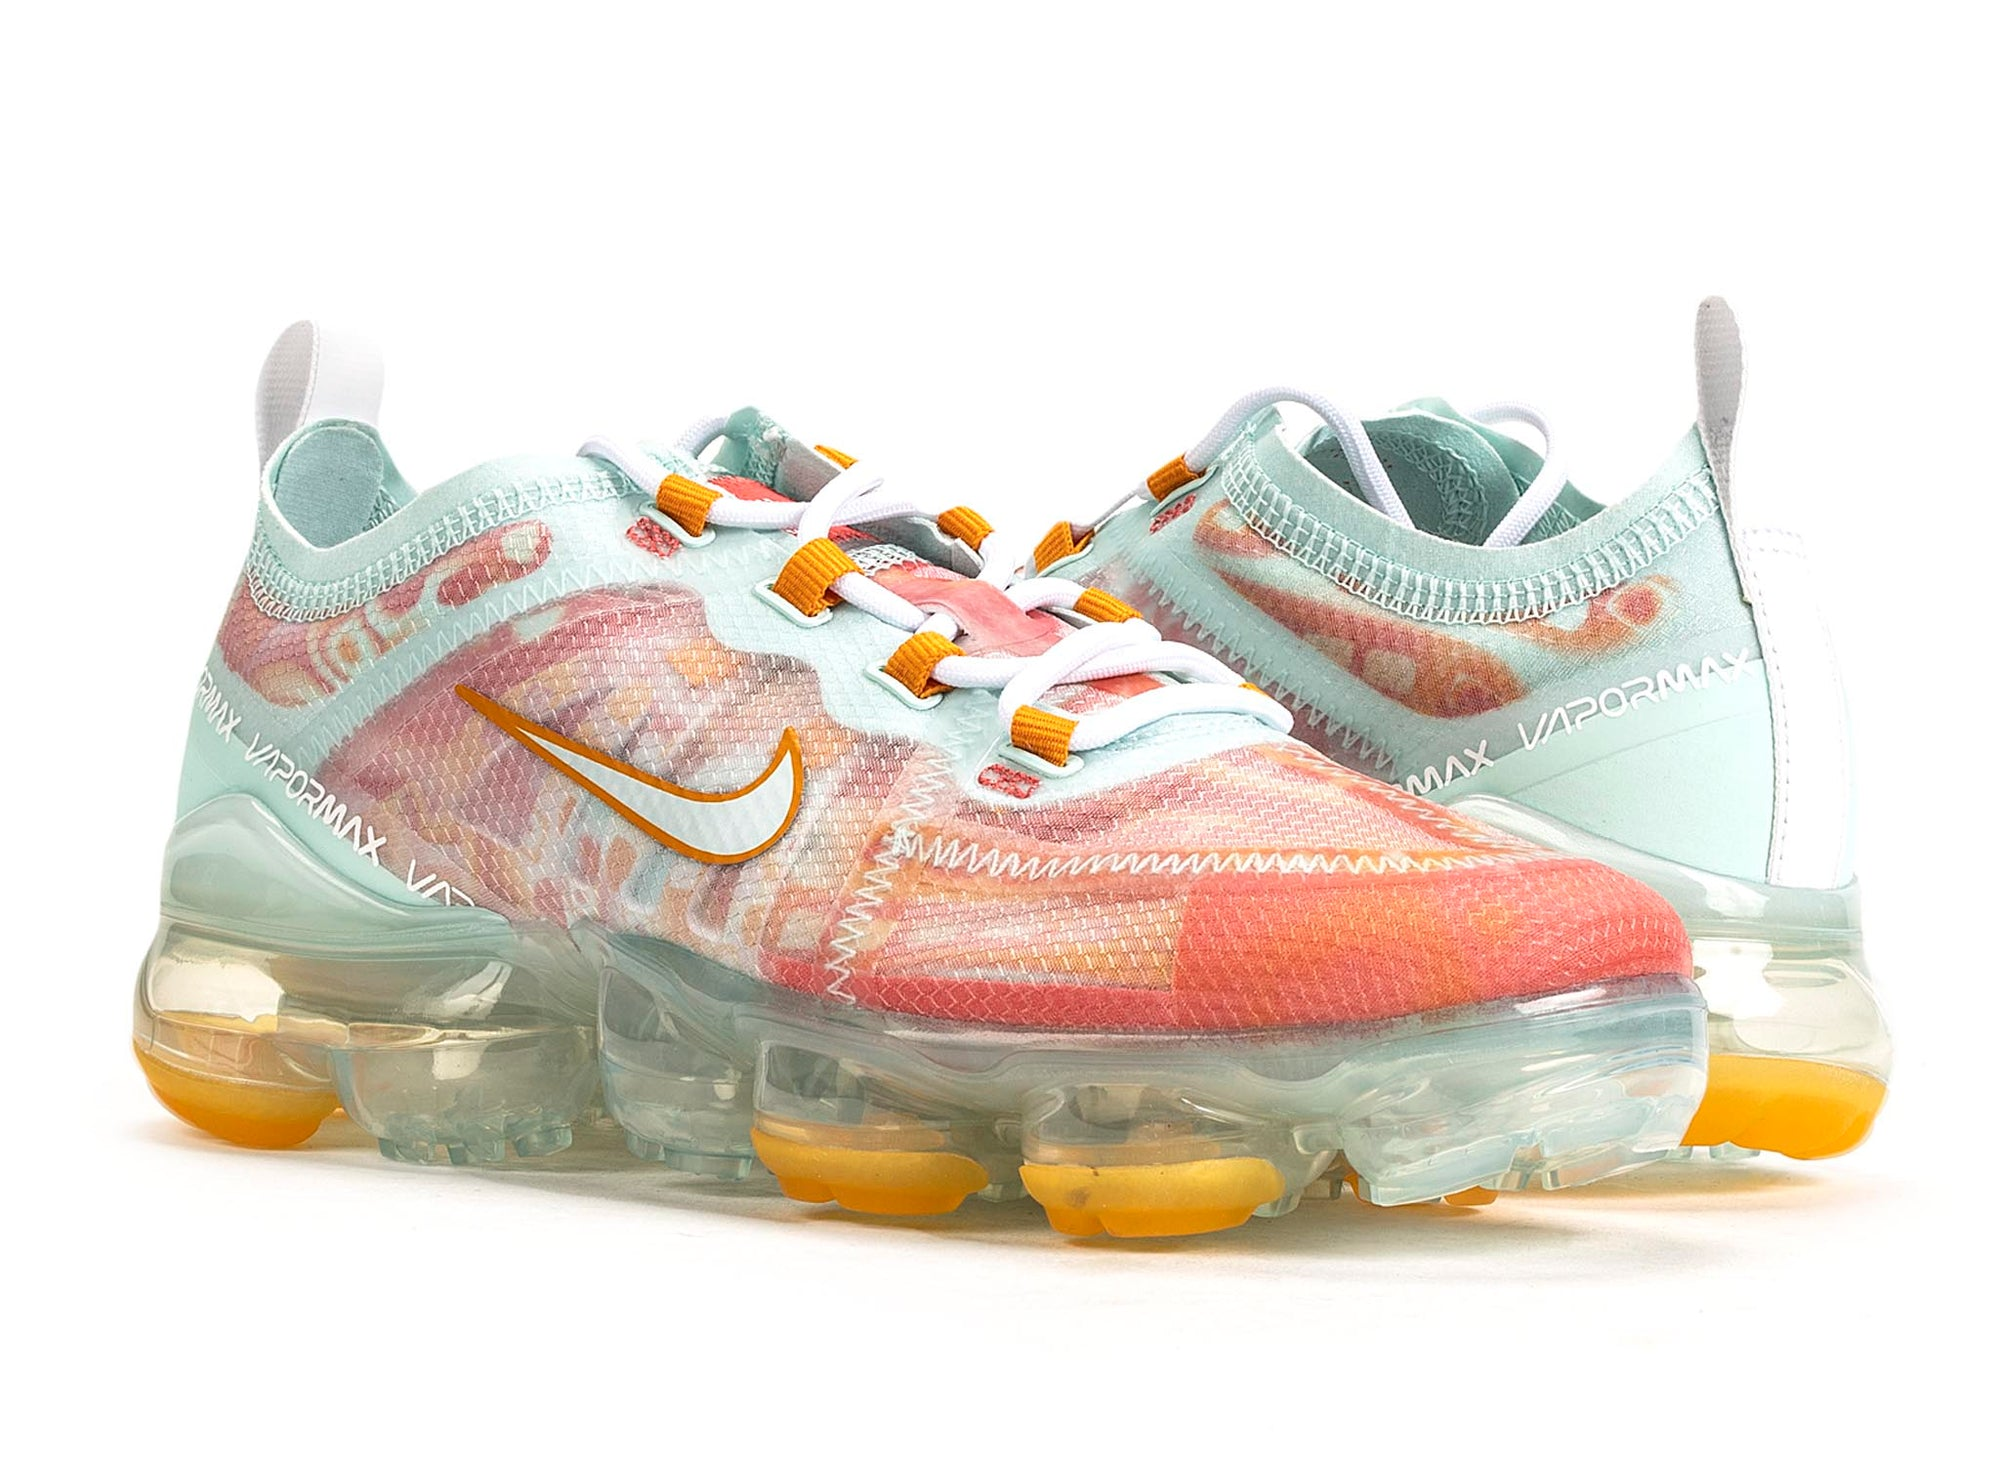 sale retailer a44cd e0ac3 Women's Nike Vapormax 2019 QS 'Dip Dyed Orange Peel'